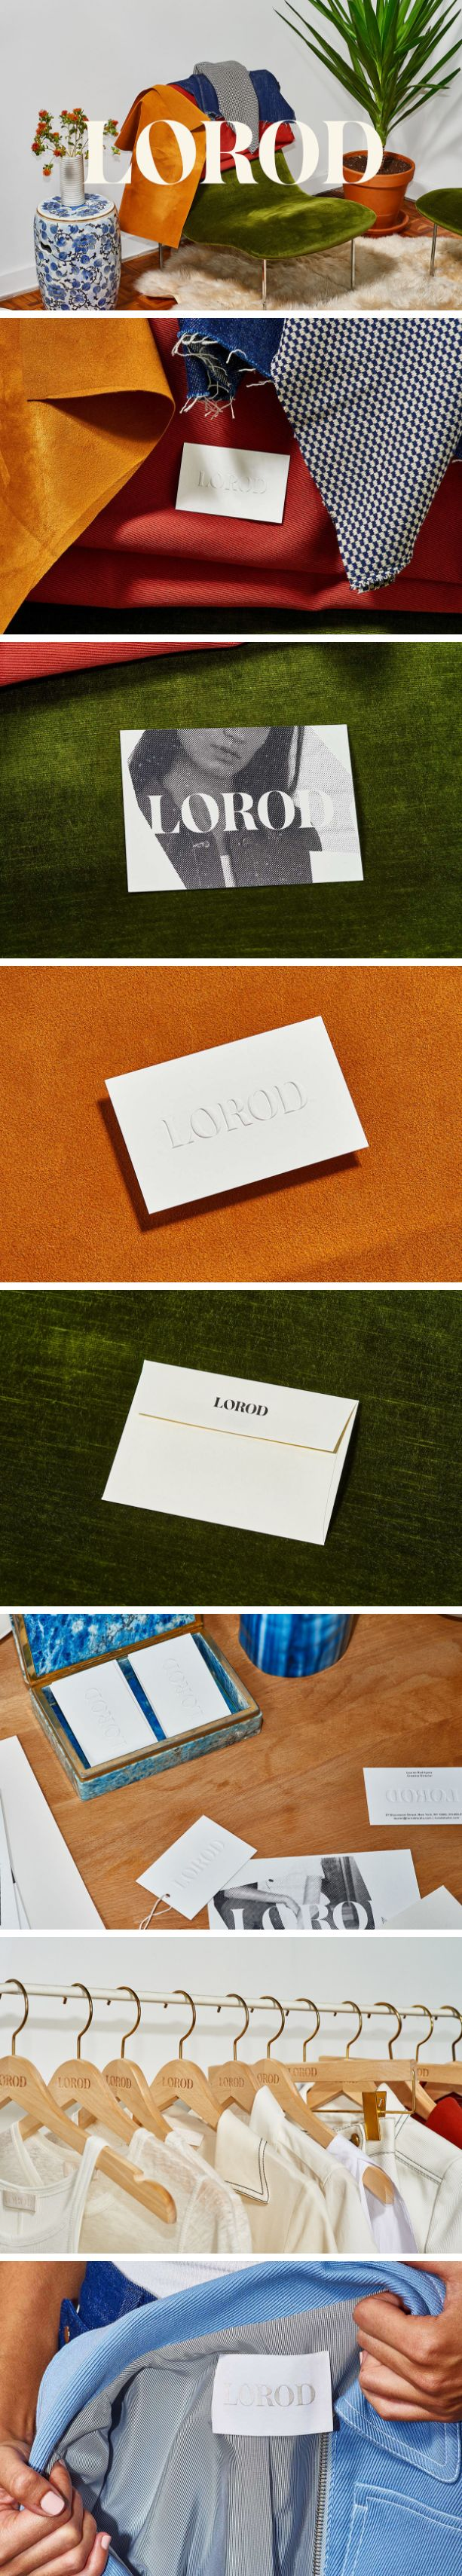 Brand Identity & Web Design for LOROD by Pentagram